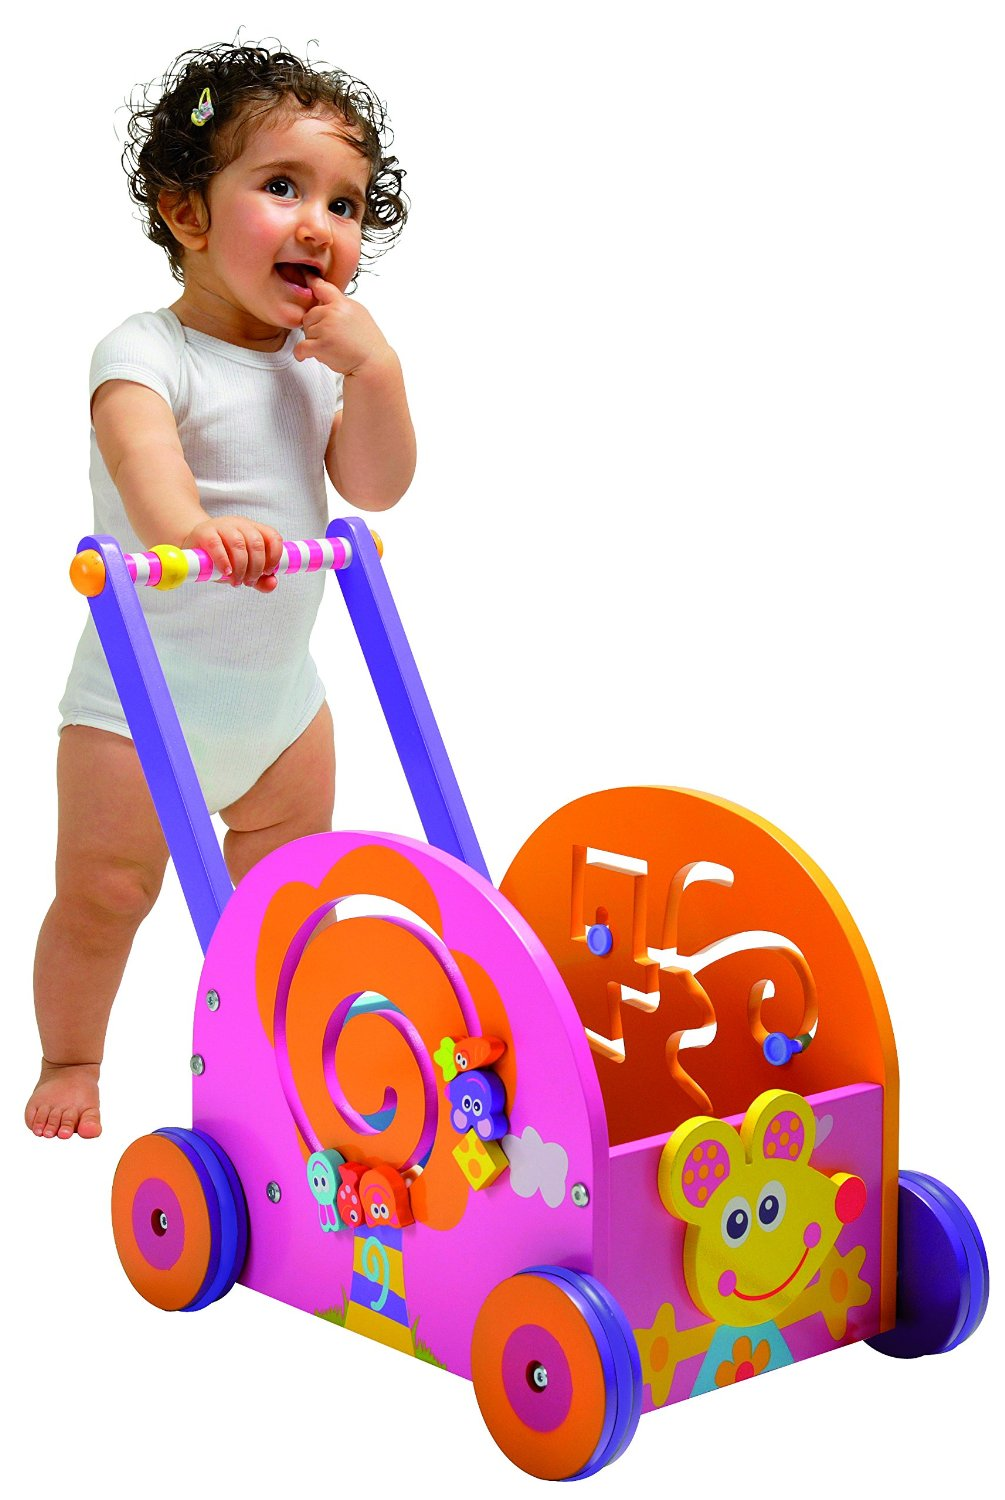 Push Toys For Toddlers : Push toys to help baby toddlers walk independently